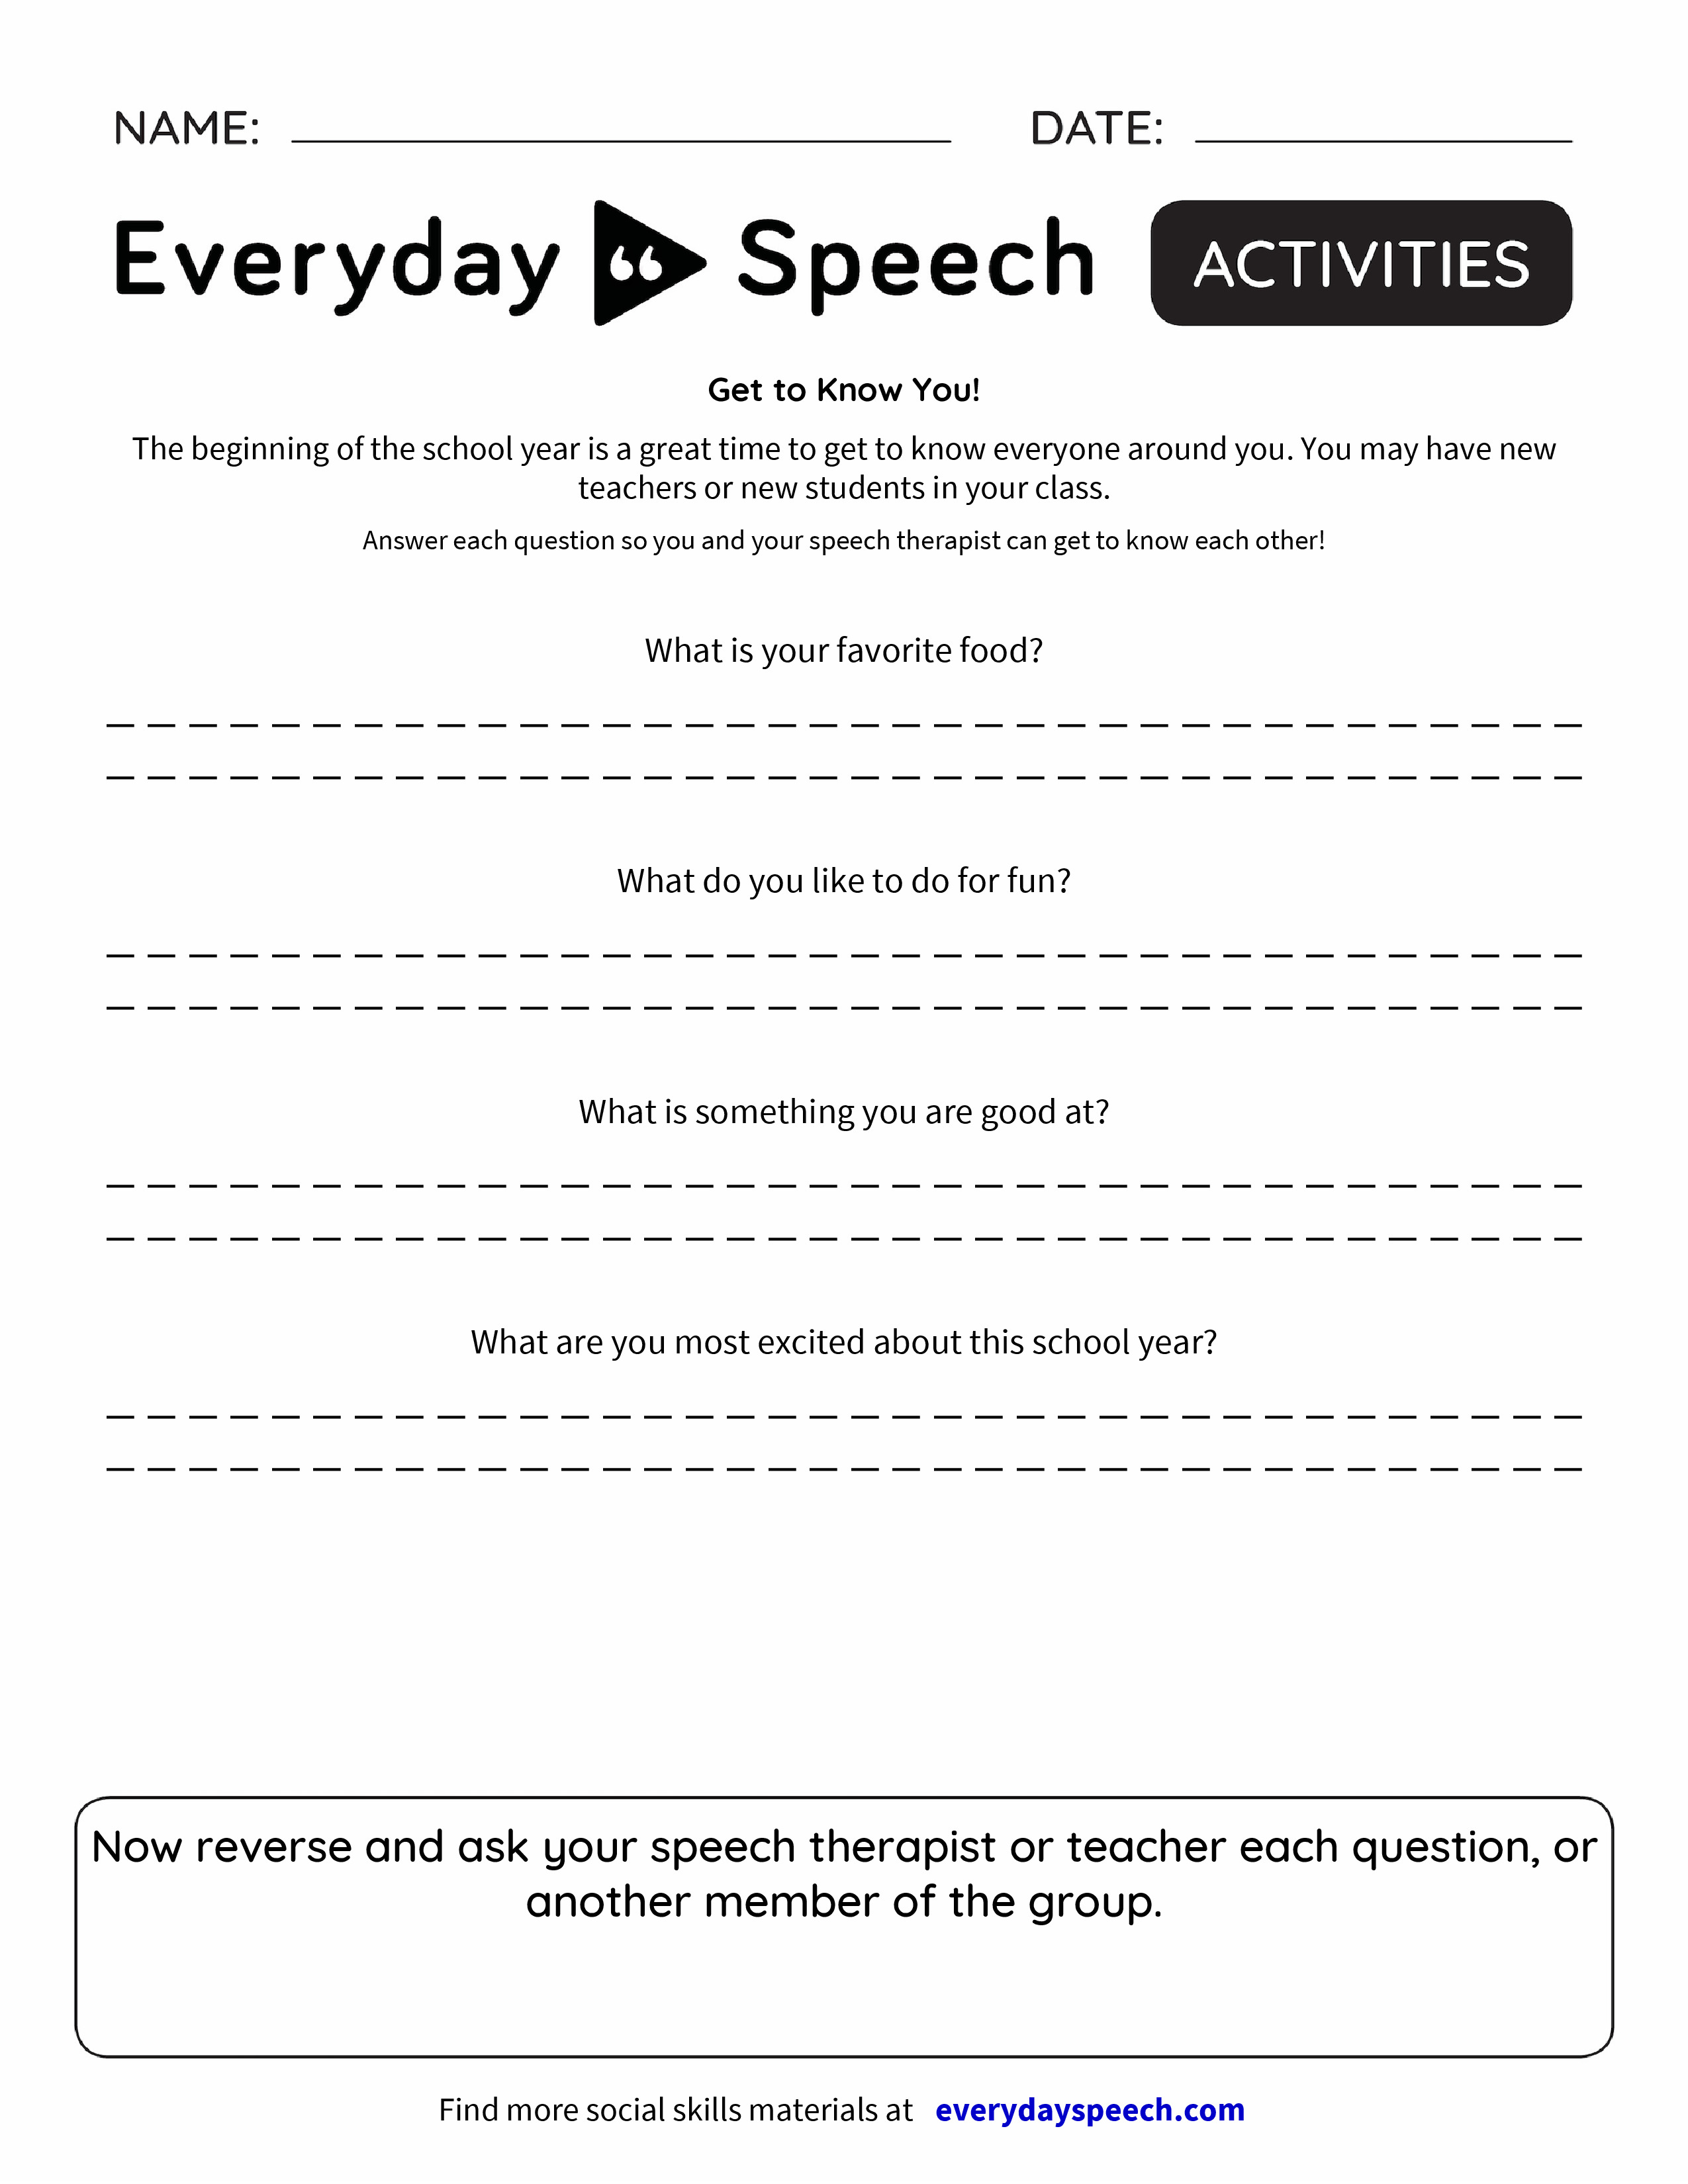 Get to Know You Facebook Page Worksheet by Beverly Brown   TpT further  moreover Getting To Know You Worksheets The best worksheets image collection together with Get To Know You Worksheets  Sch Therapy PreK High School   TpT further Getting To Know You Student Form Teaching Resources   Teachers Pay additionally Getting to Know You Worksheet   Worksheet   End of Year Back to in addition  moreover Worksheet   Getting To Know You Questions For Kids Get Students Ice moreover Middle and High Ice Breakers Ideas   Math Opens Doors in addition Student Info Beginning of Year Social Media Printable   clroom furthermore Getting To Know You Worksheet High The Best Worksheets I on additionally Getting to Know Me   TeacherVision together with 207 FREE Getting to Know Each Other Worksheets in addition  also Get to Know You    Everyday Sch   Everyday Sch further Getting to Know You Worksheet   A to Z Teacher Stuff Printable Pages. on getting to know you worksheet